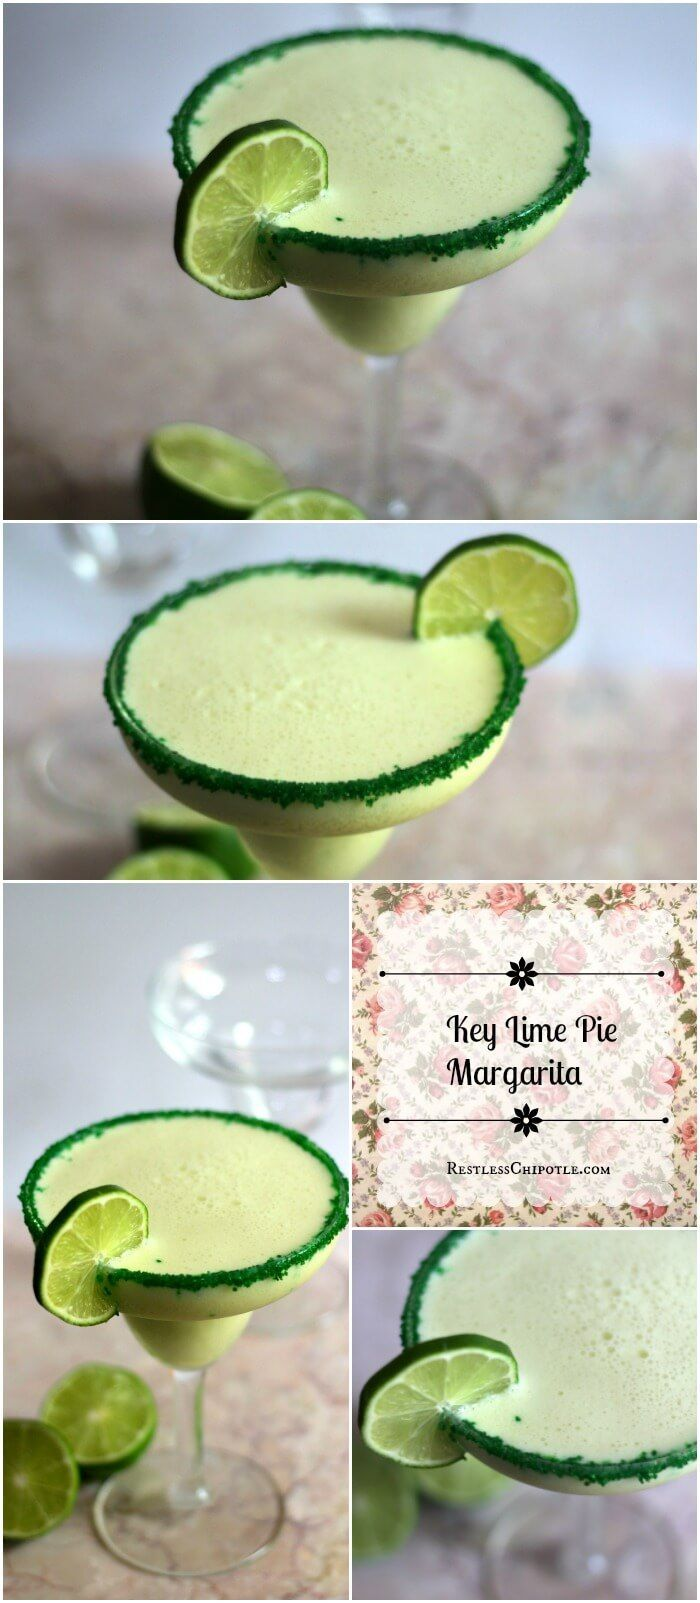 Key Lime Pie Margarita? Perfect cocktail for summer parties! From http://RestlessChipotle.com